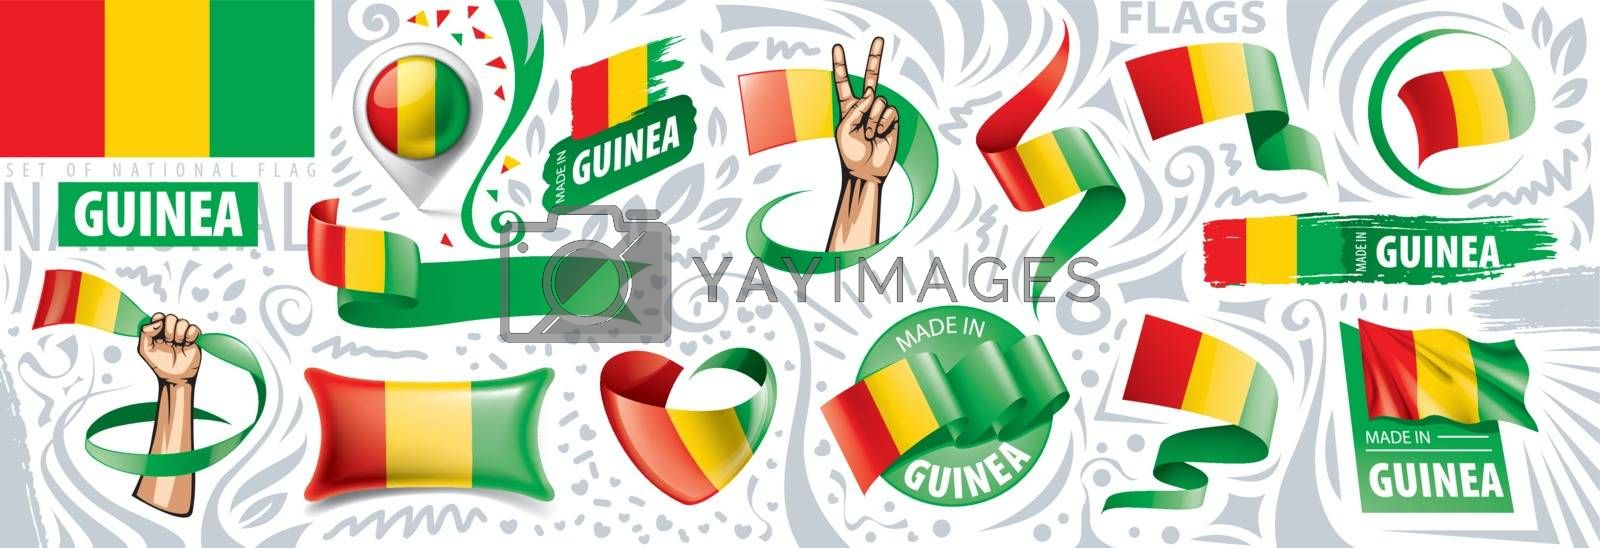 Vector set of the national flag of Guinea in various creative designs by Butenkov